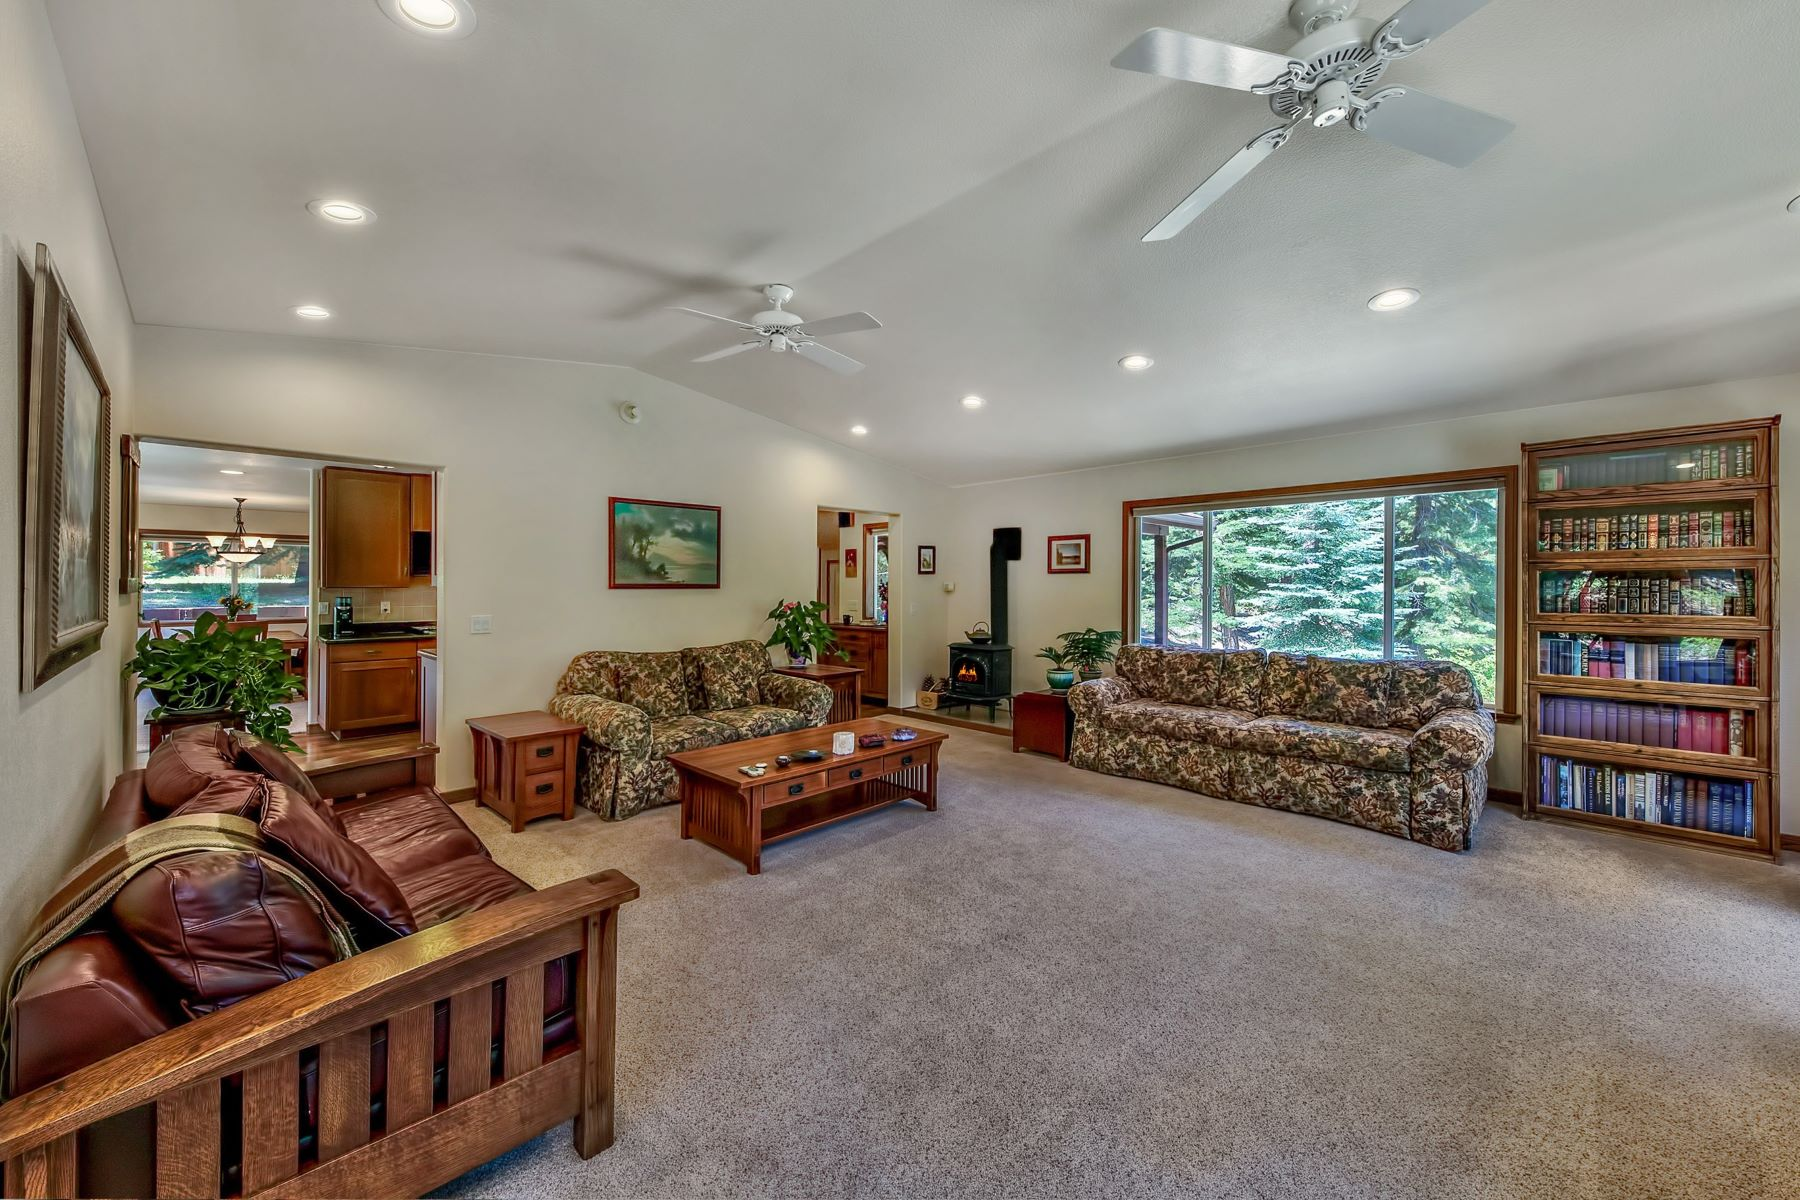 Additional photo for property listing at 2341 Sierra House Trail, South Lake Tahoe, CA 96150 2341 Sierra House Trail South Lake Tahoe, California 96150 United States